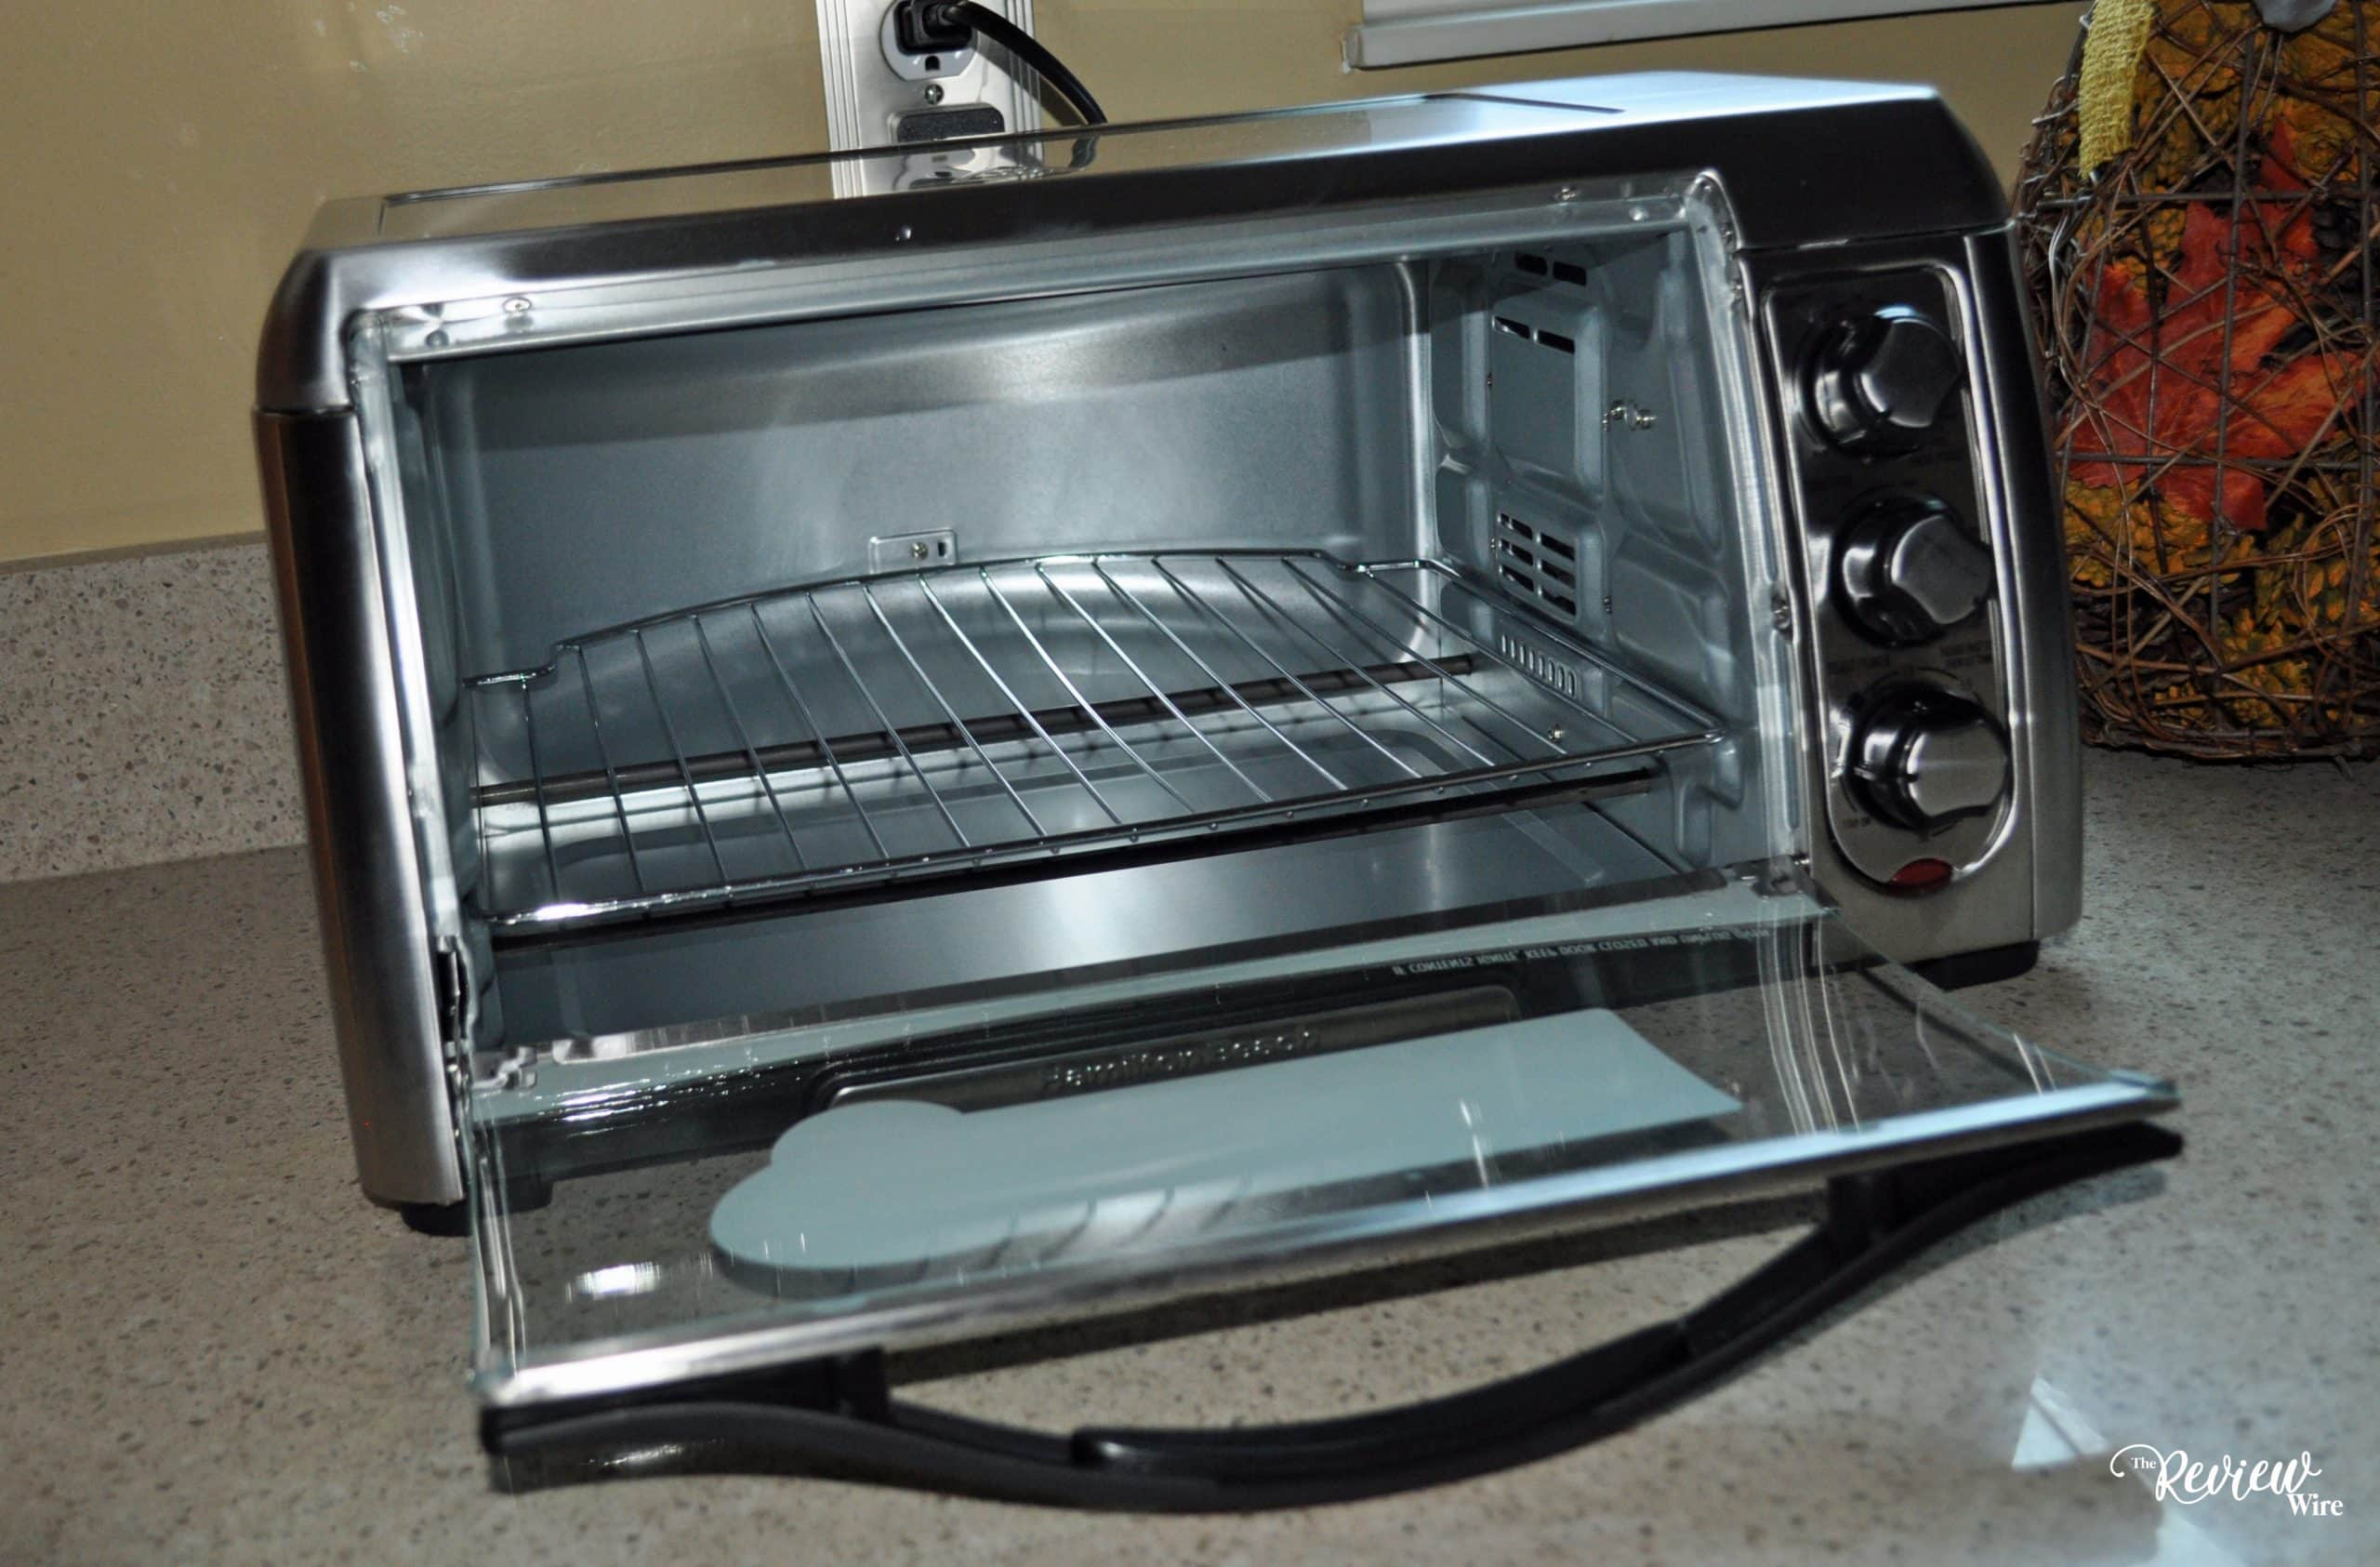 Hamilton Beach Sure-Crisp Air Fry Toaster Oven